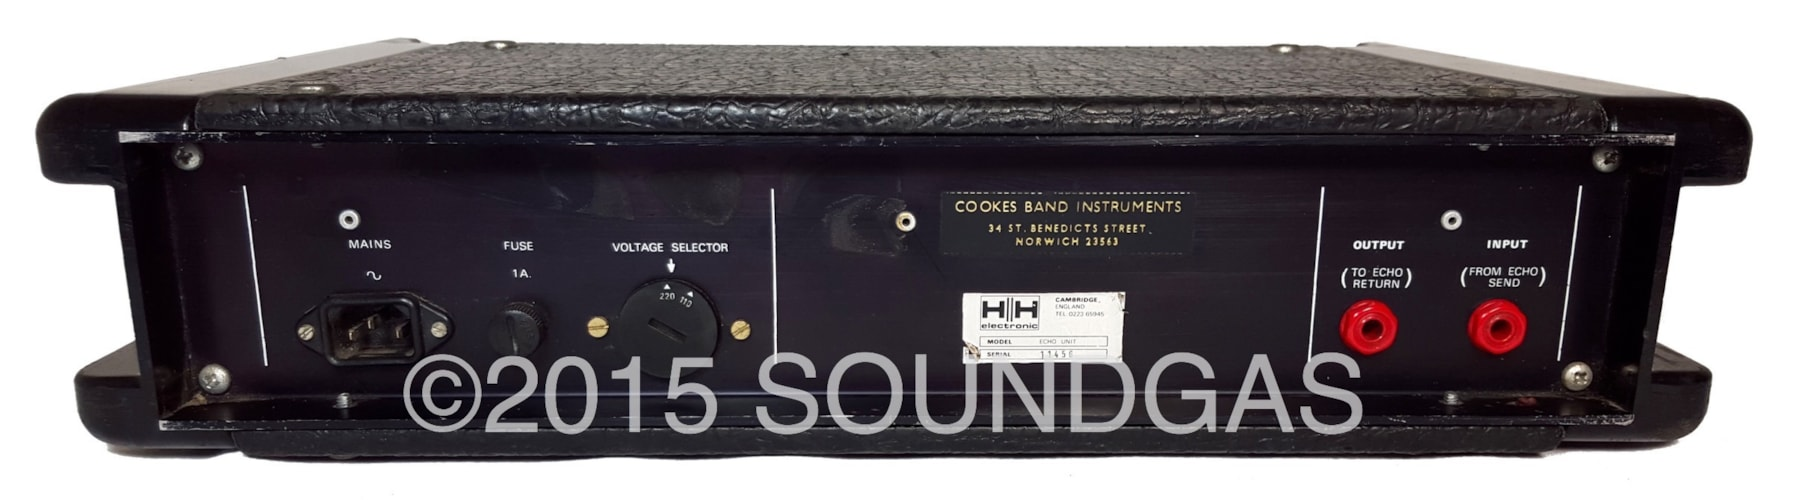 1970 H|H Electronic Echo Unit Very Good, $940.00